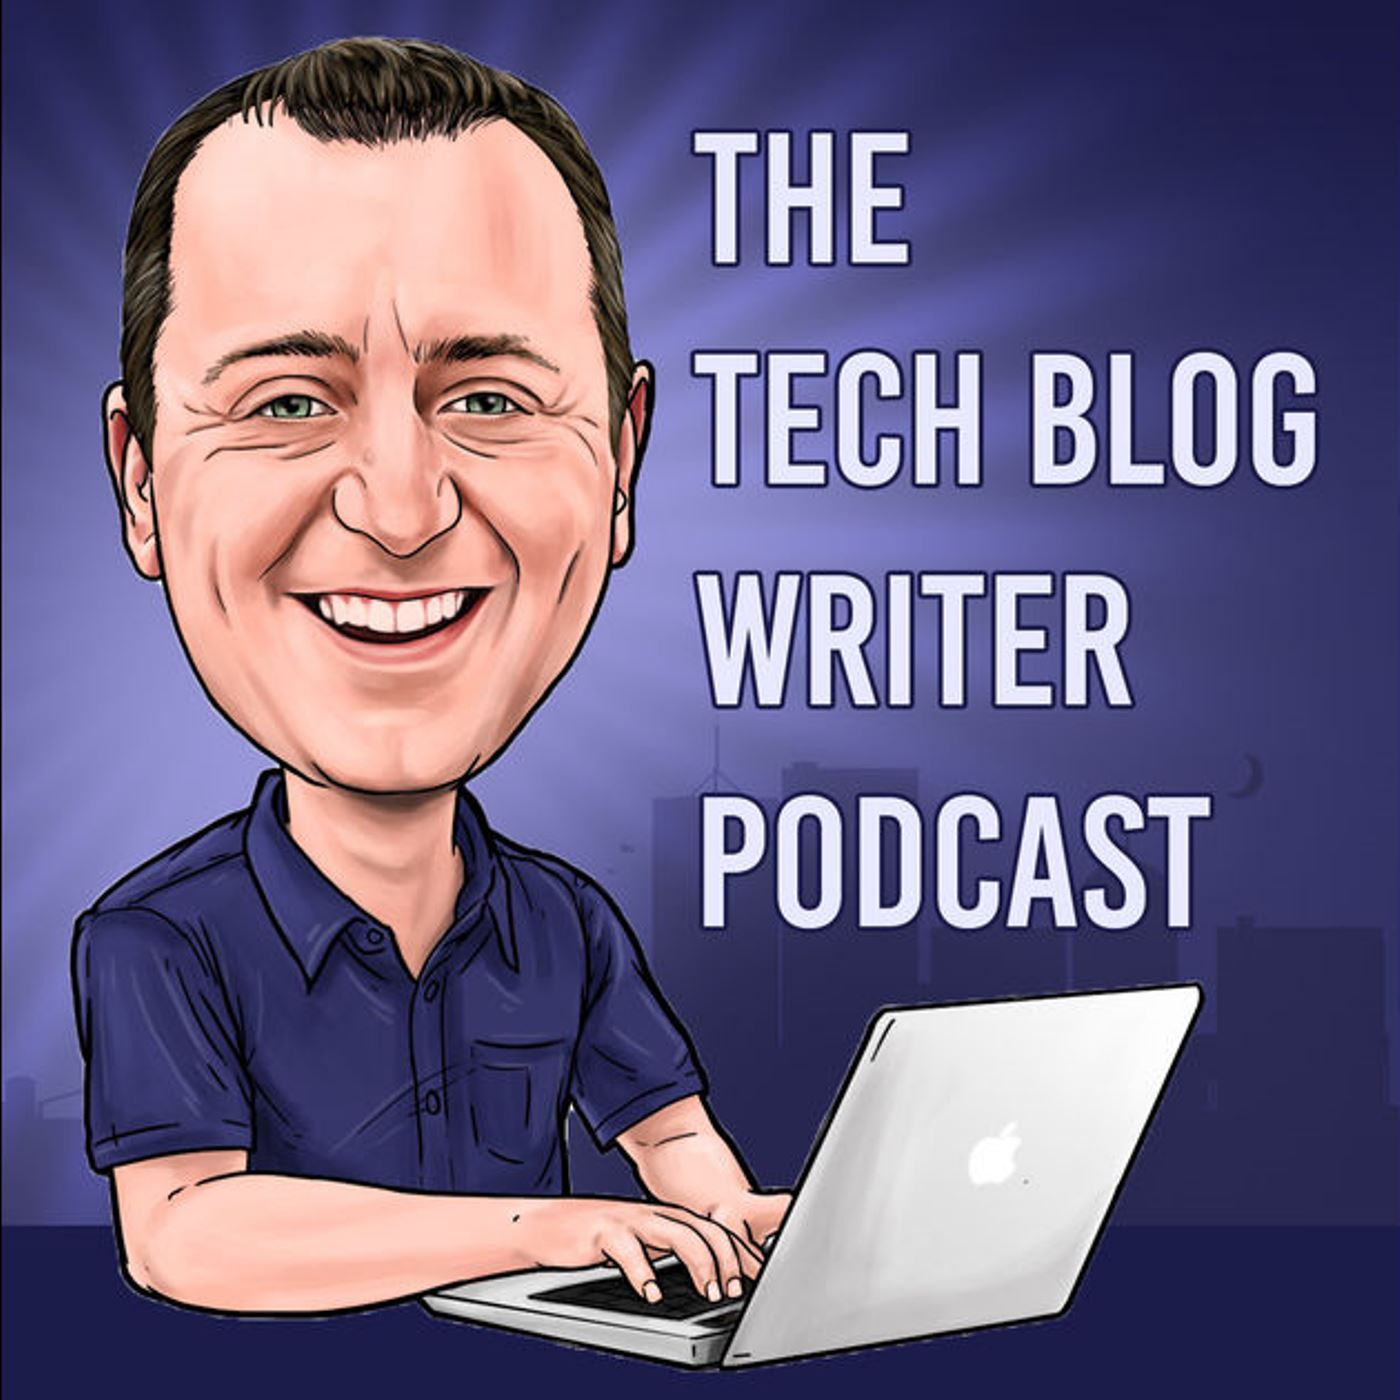 The Tech Blog Writer Podcast - Inspired Startup Stories & Interviews With Tech Leaders, Entrepreneurs, Innovators and Disruptors  logo